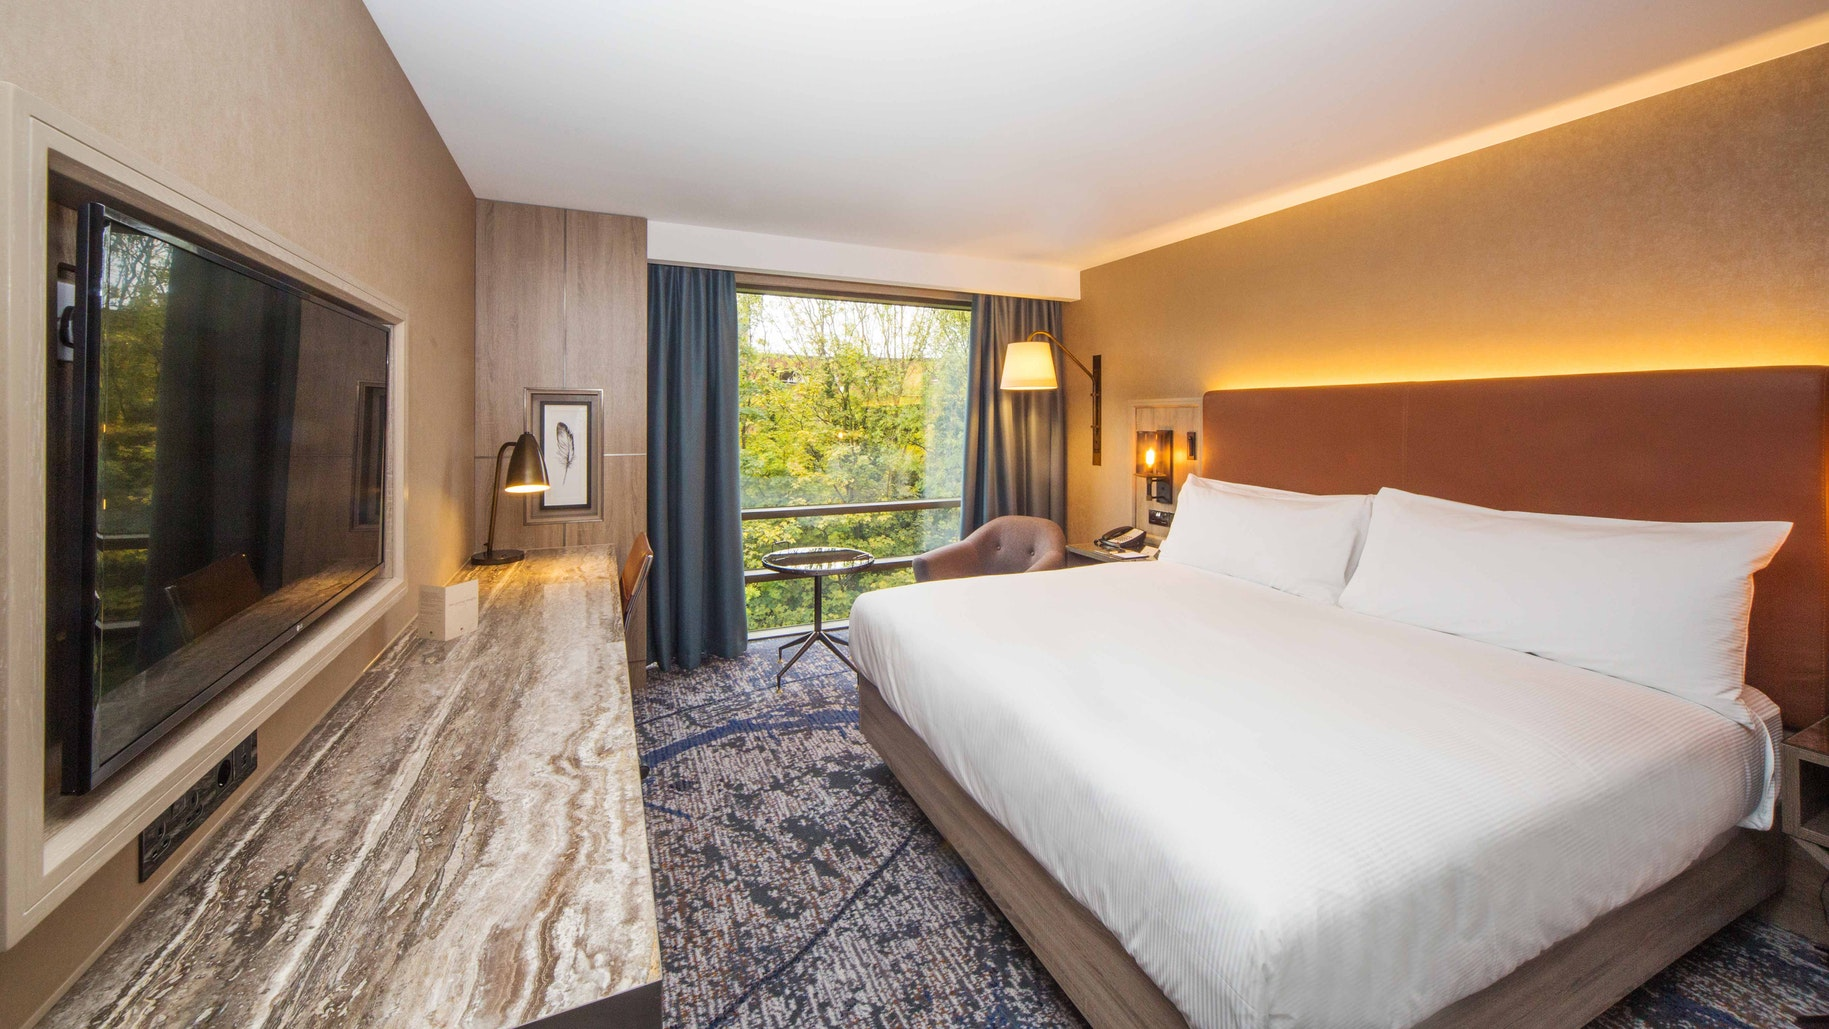 Doubletree By Hilton London - Kingston upon Thames near Chessington World of Adventures Resort